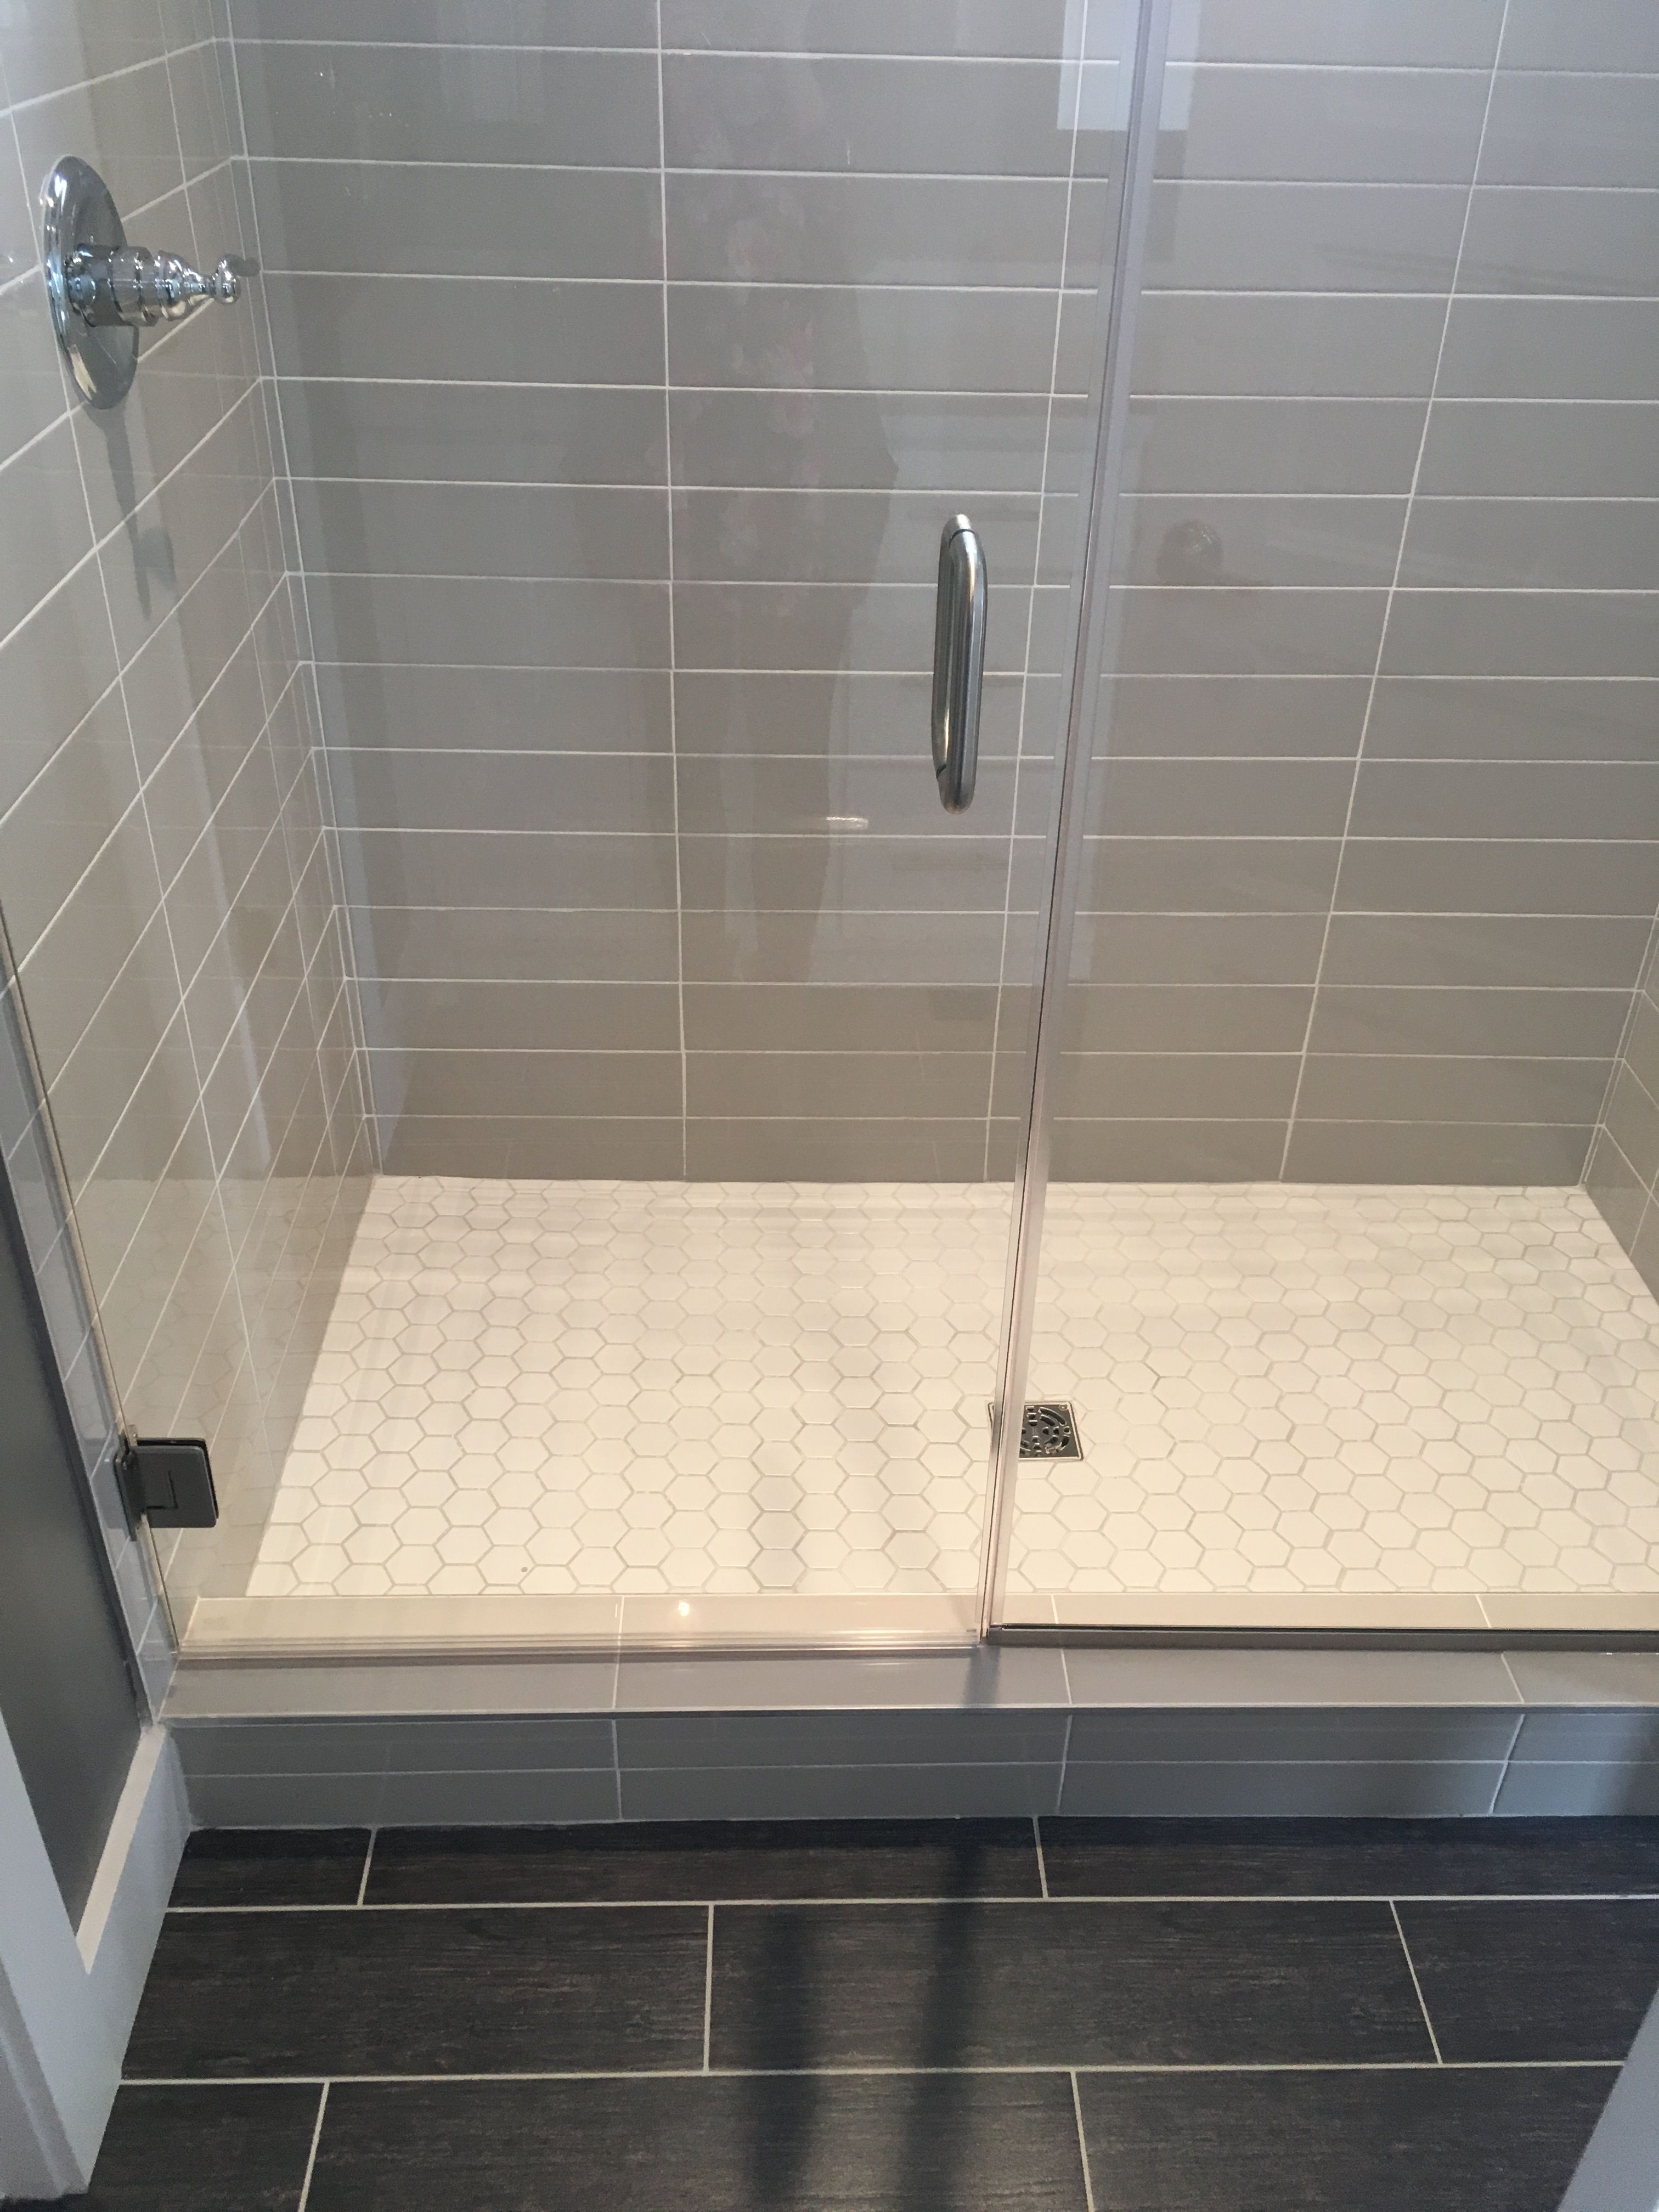 Wood Shower Floor Gray 4x16 Subway Tile Stacked With White Hex Shower Floor